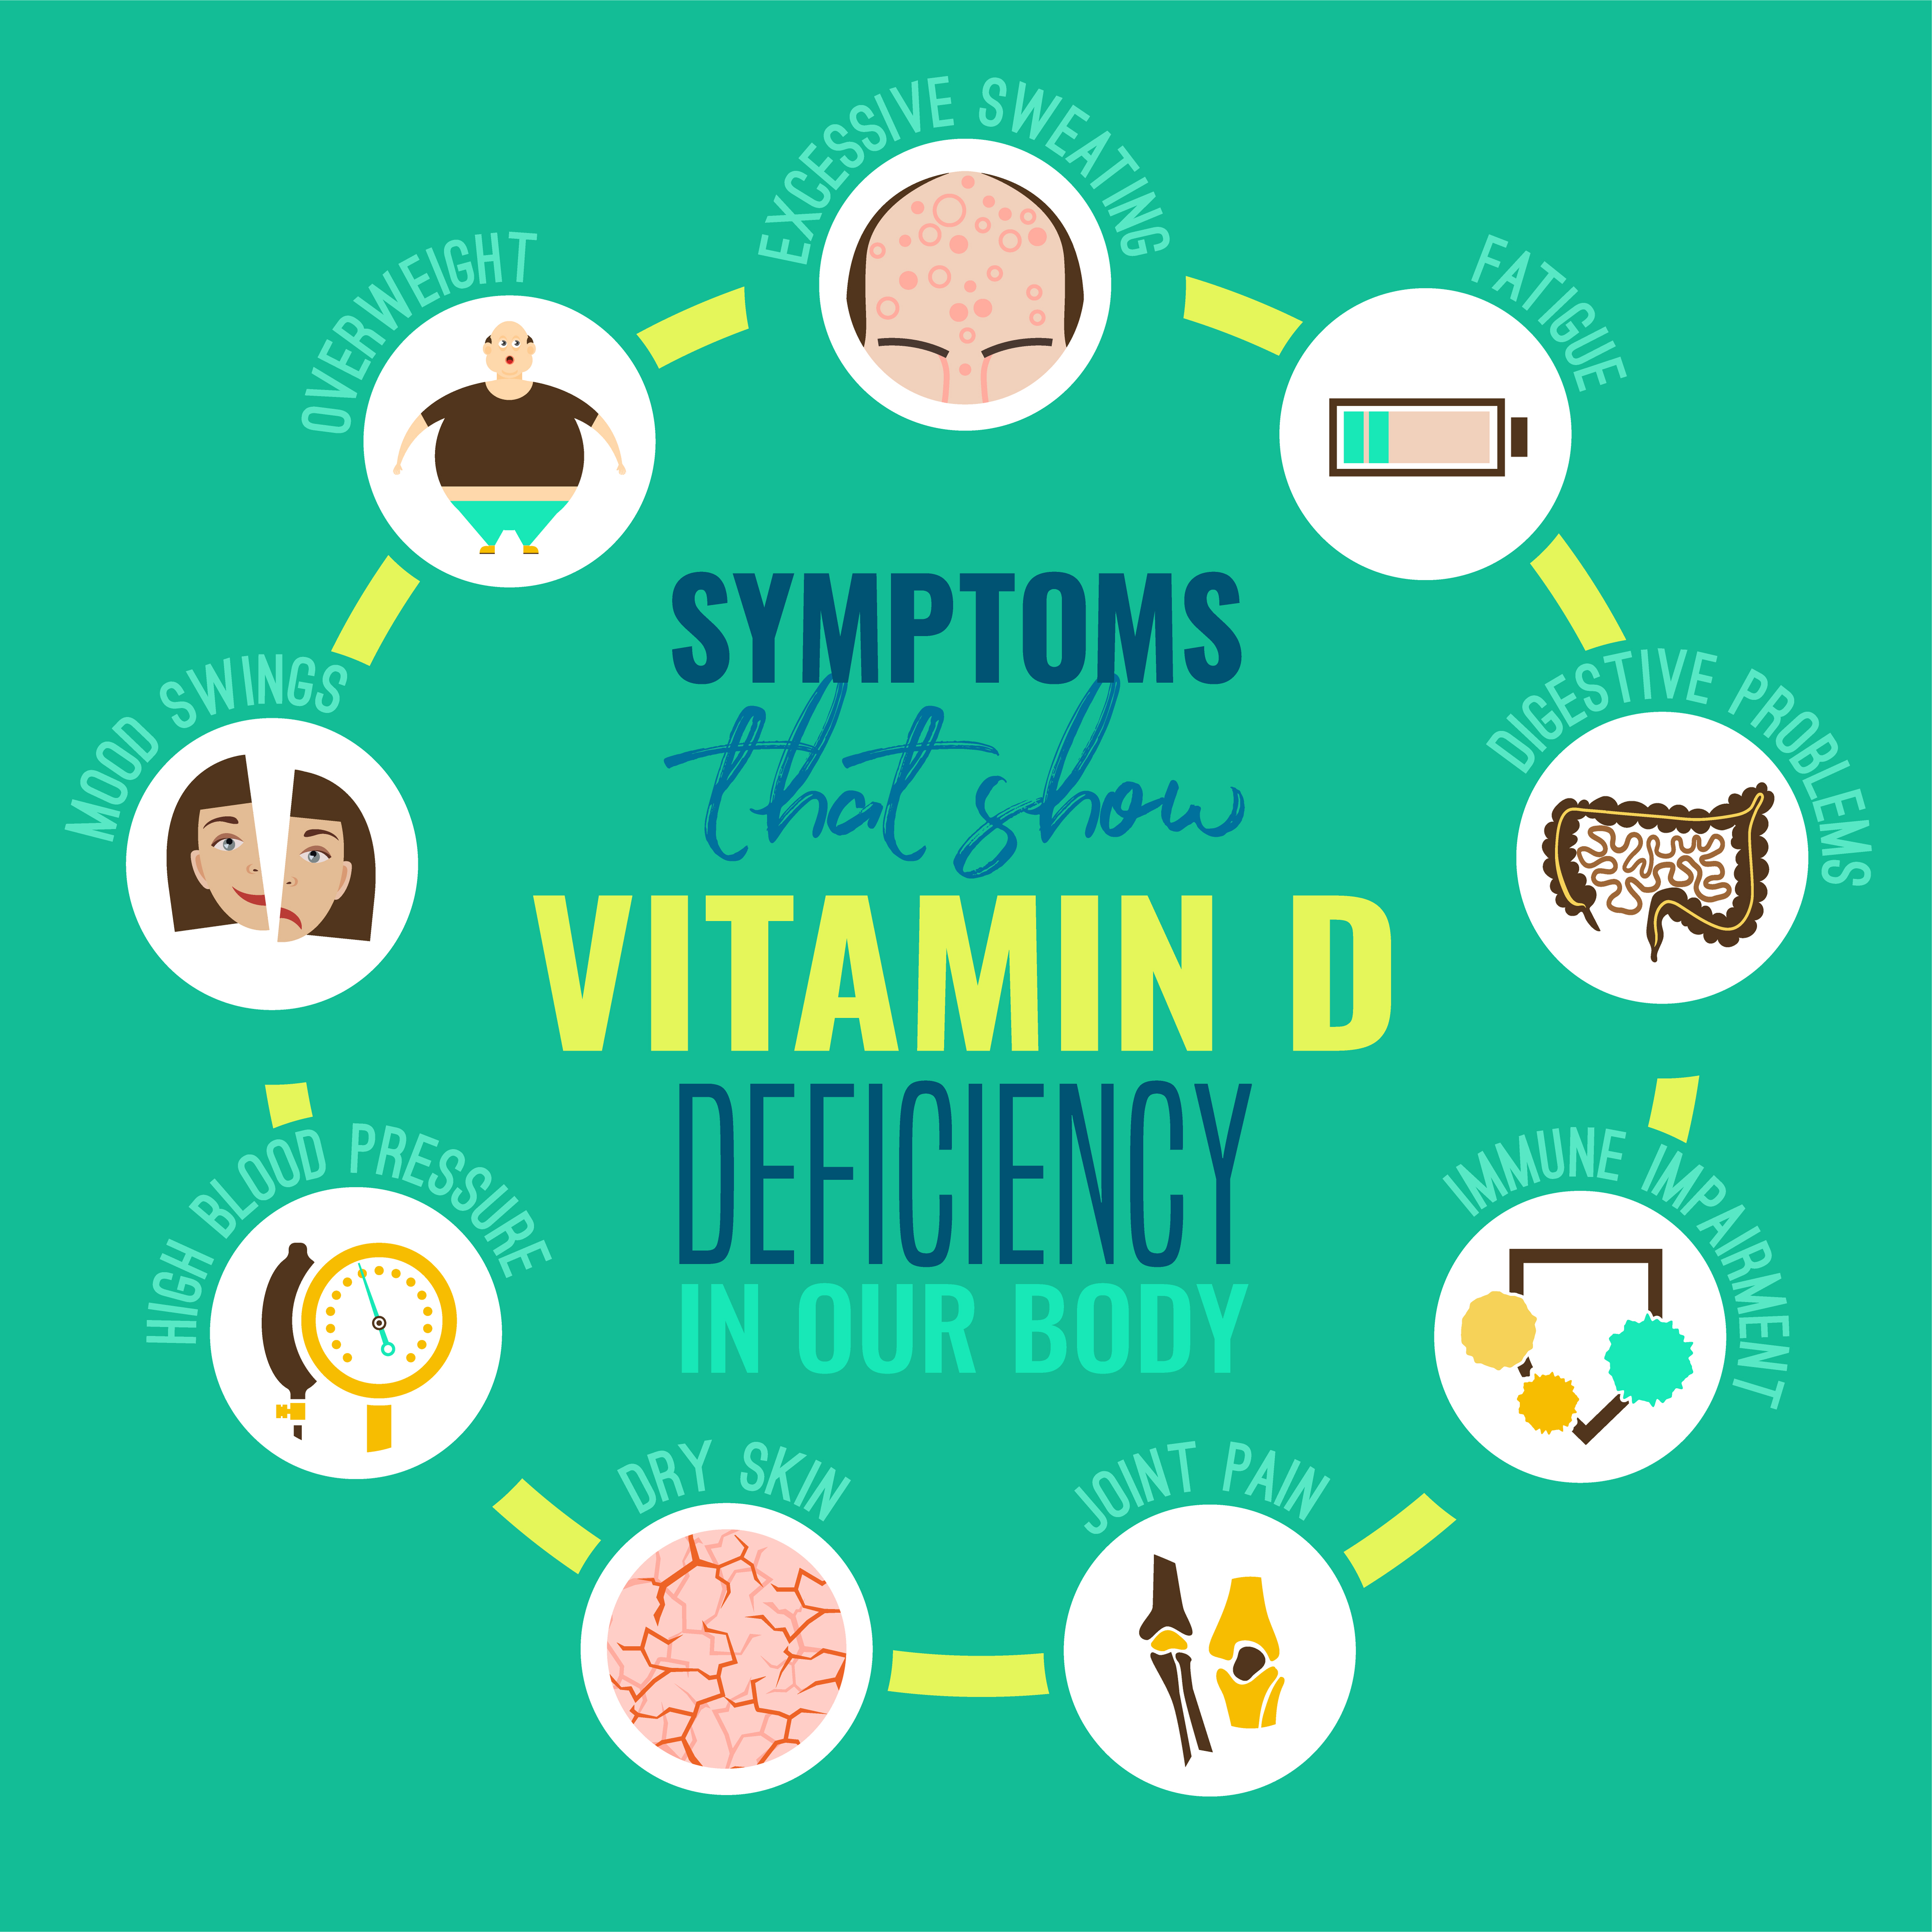 Symptoms of Vitamin D deficiency - infographic